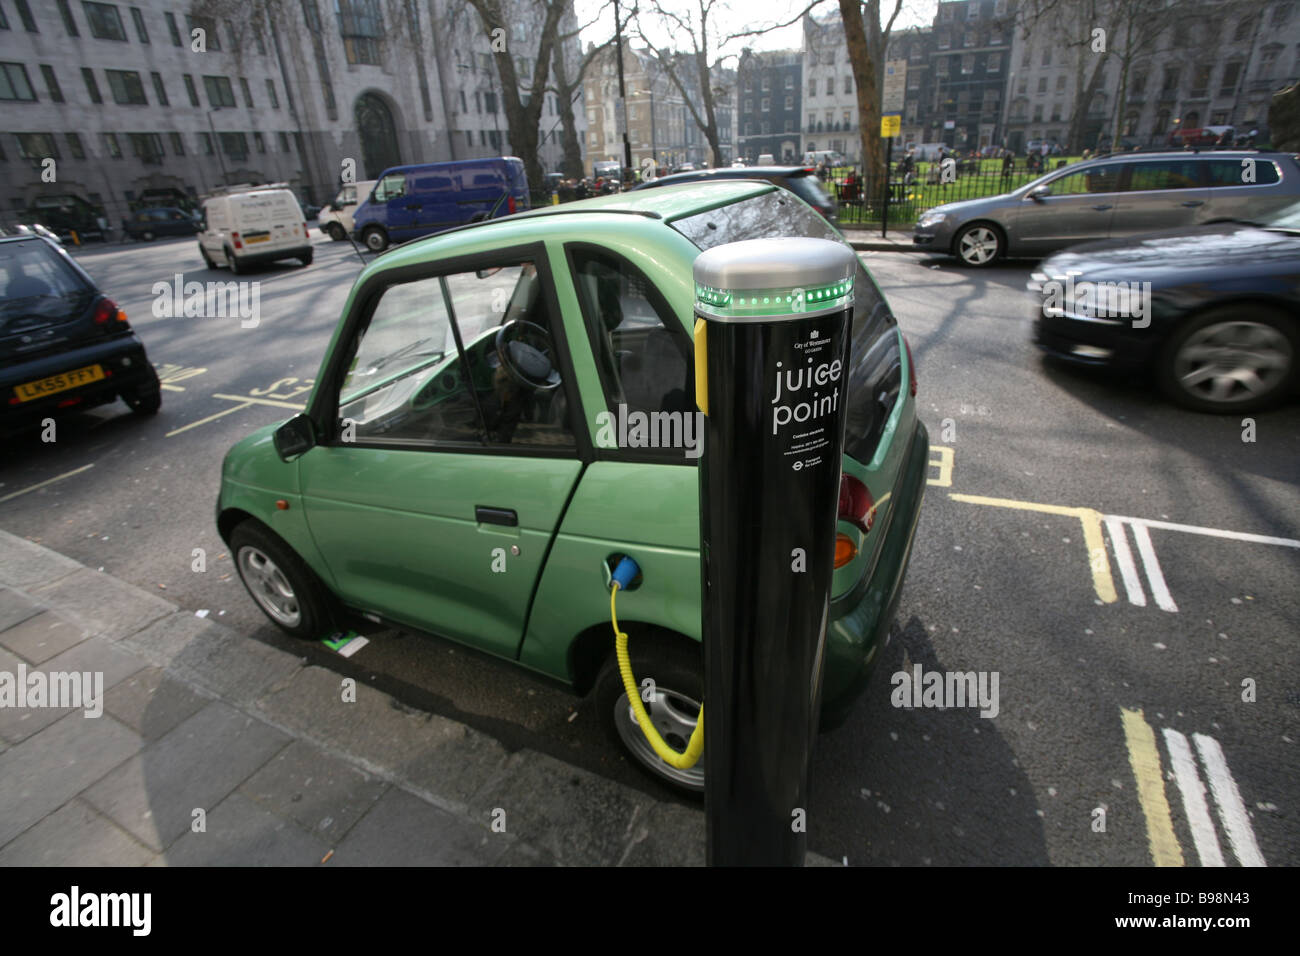 Electric vehicle being charged, Westminster, London - Stock Image